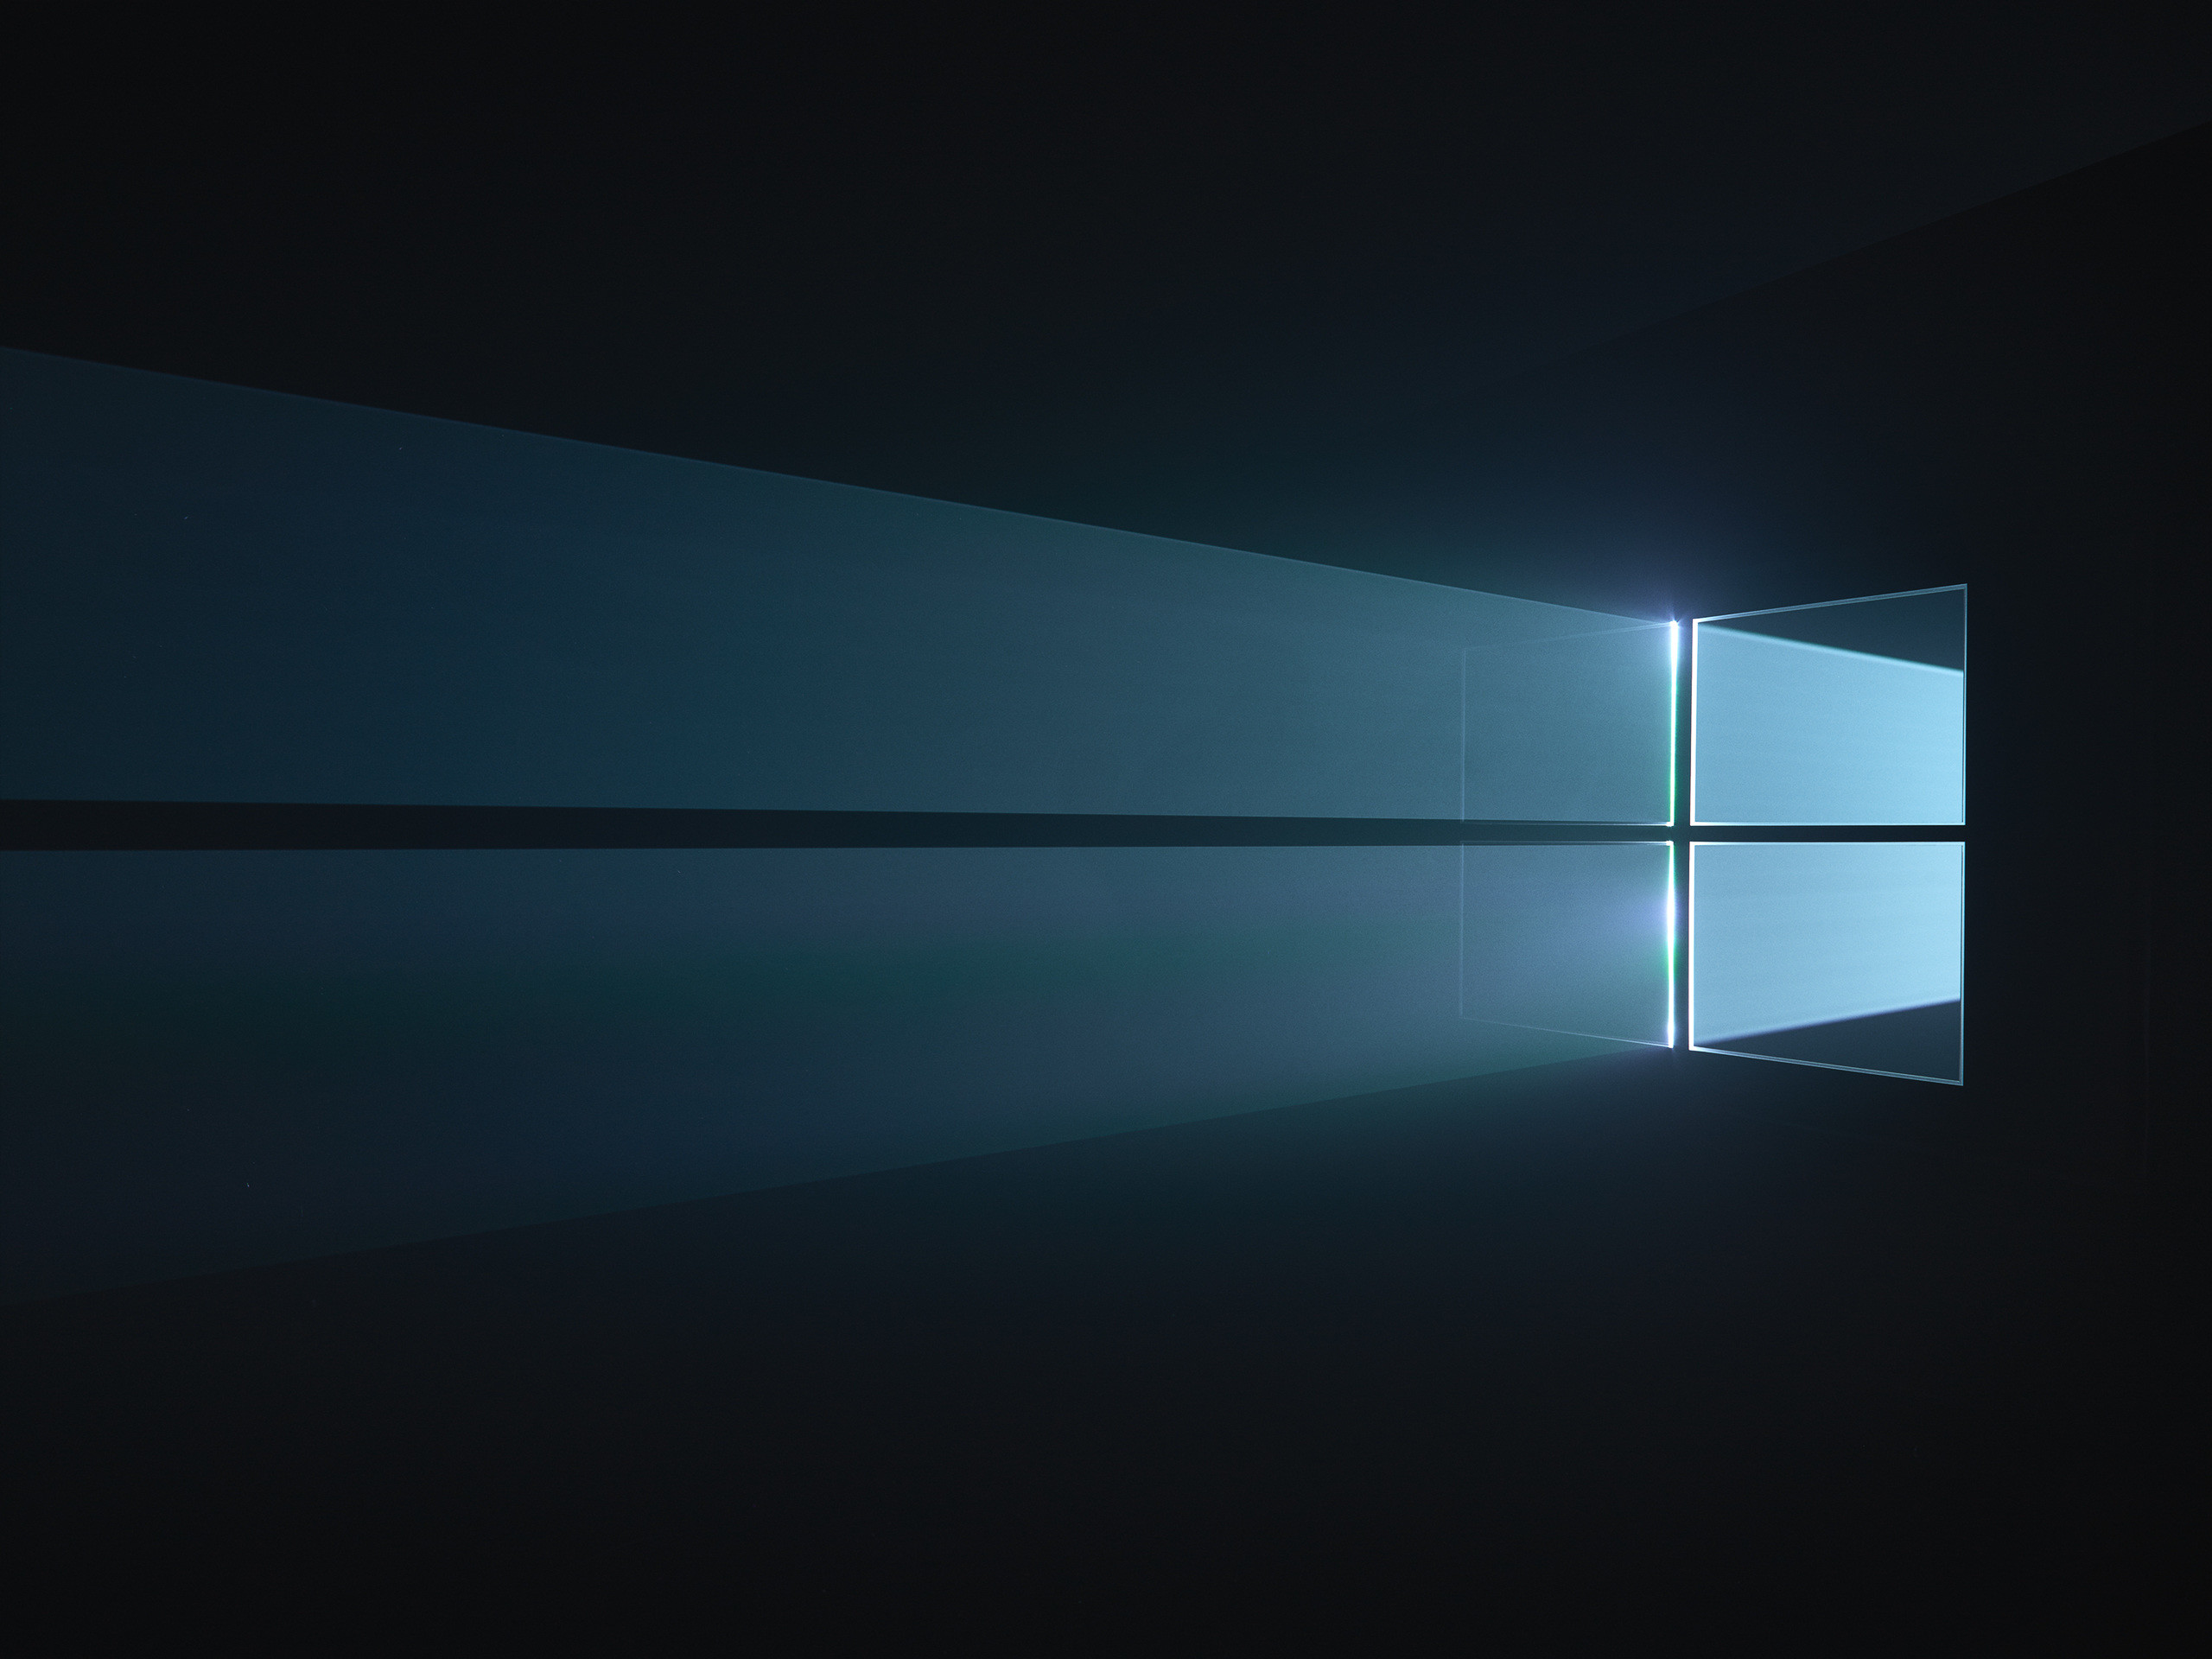 2560x1920 ... that brought a dark, moody definition and a distinctive, provocative  take. It gave the Windows logo a sense of mystery that's powerful in its  own way.